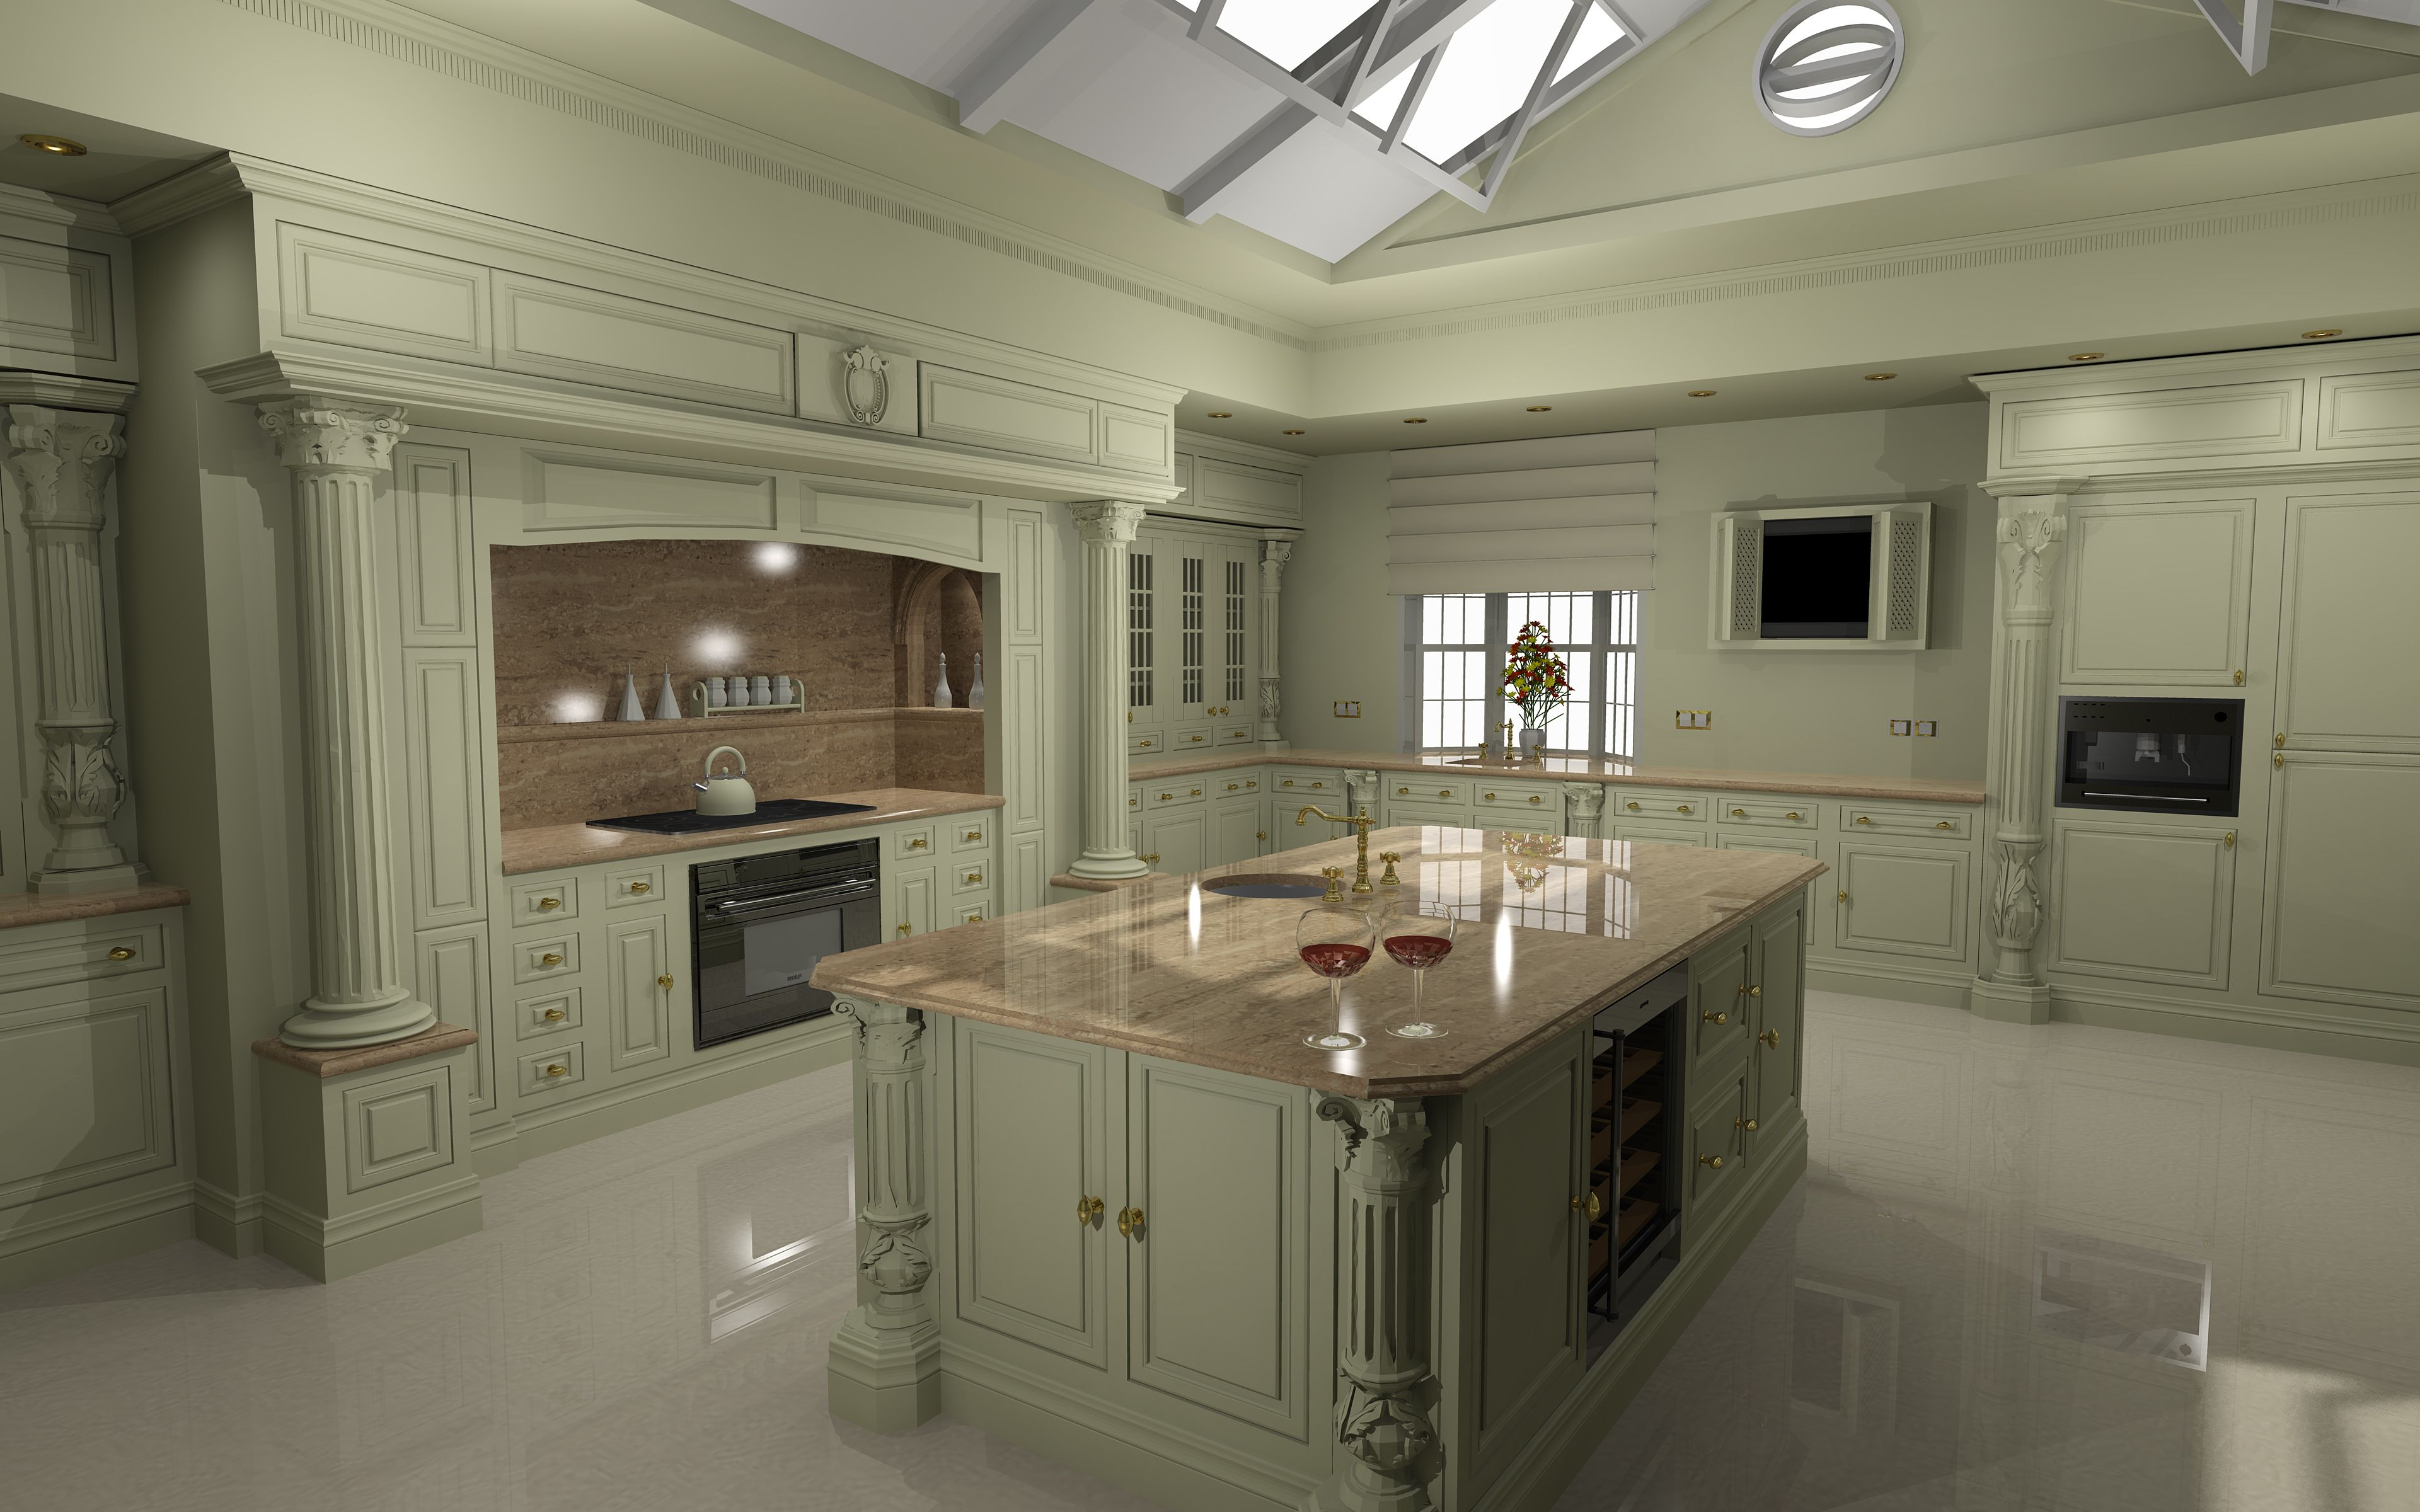 bespoke kitchen designs no problem another successful